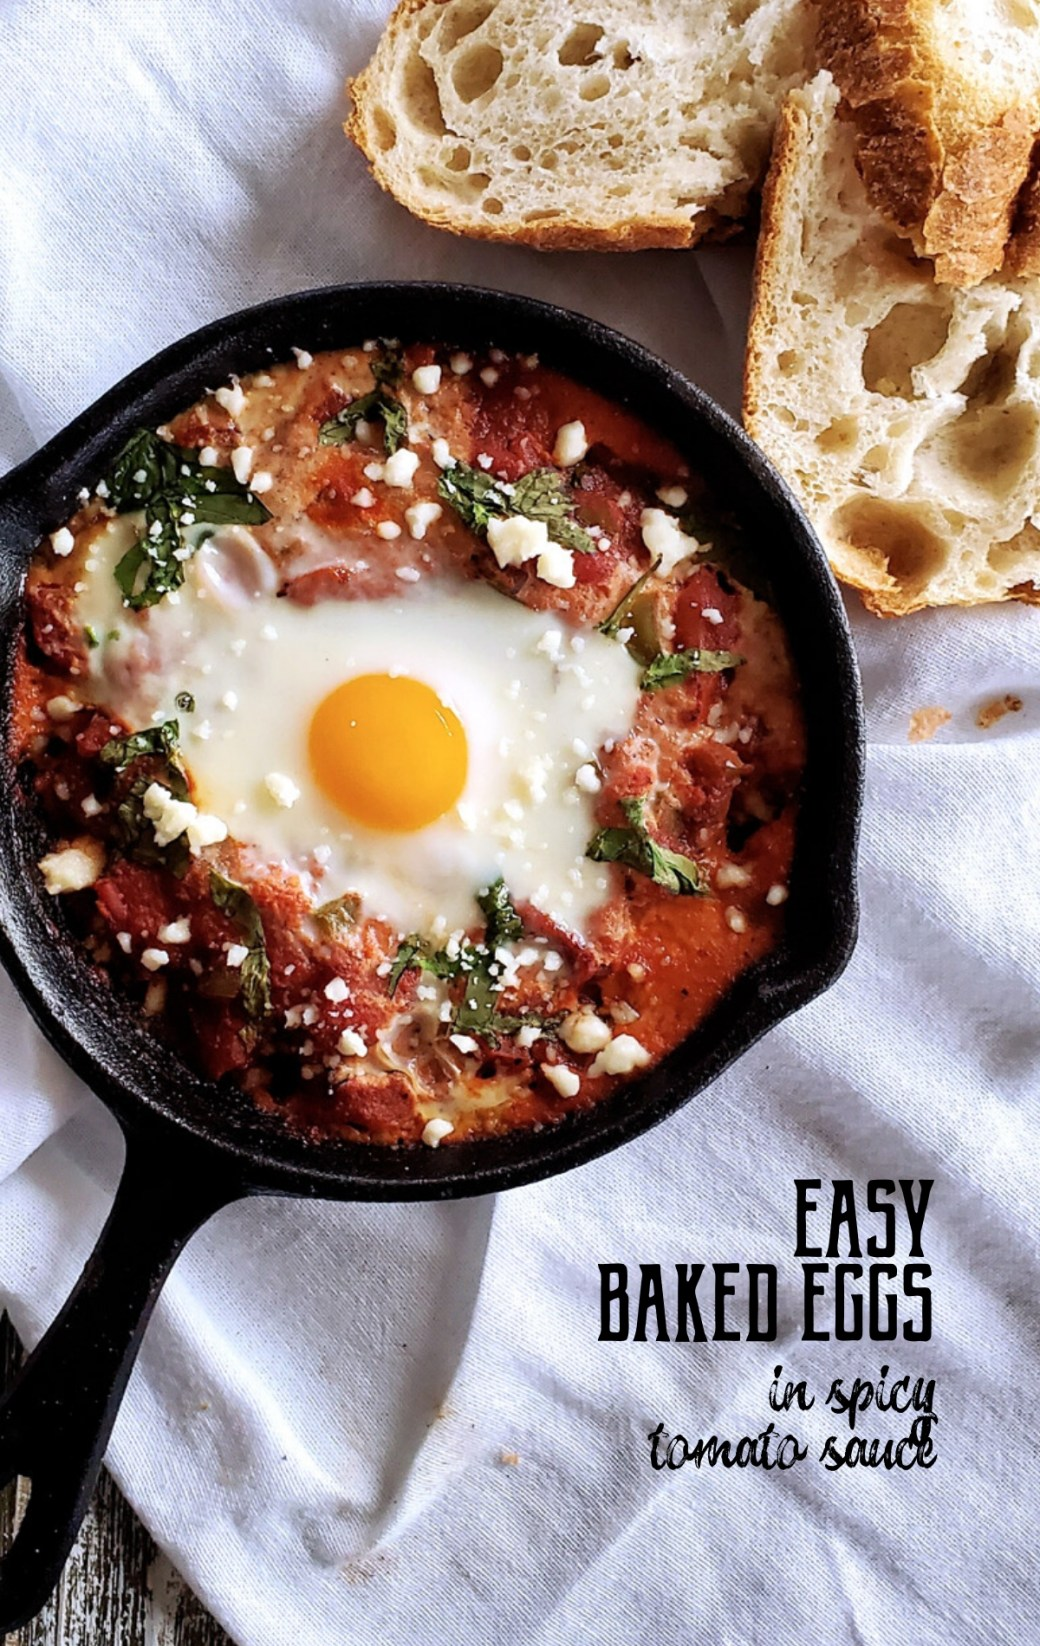 Easy Baked Eggs in Spicy Tomato Sauce